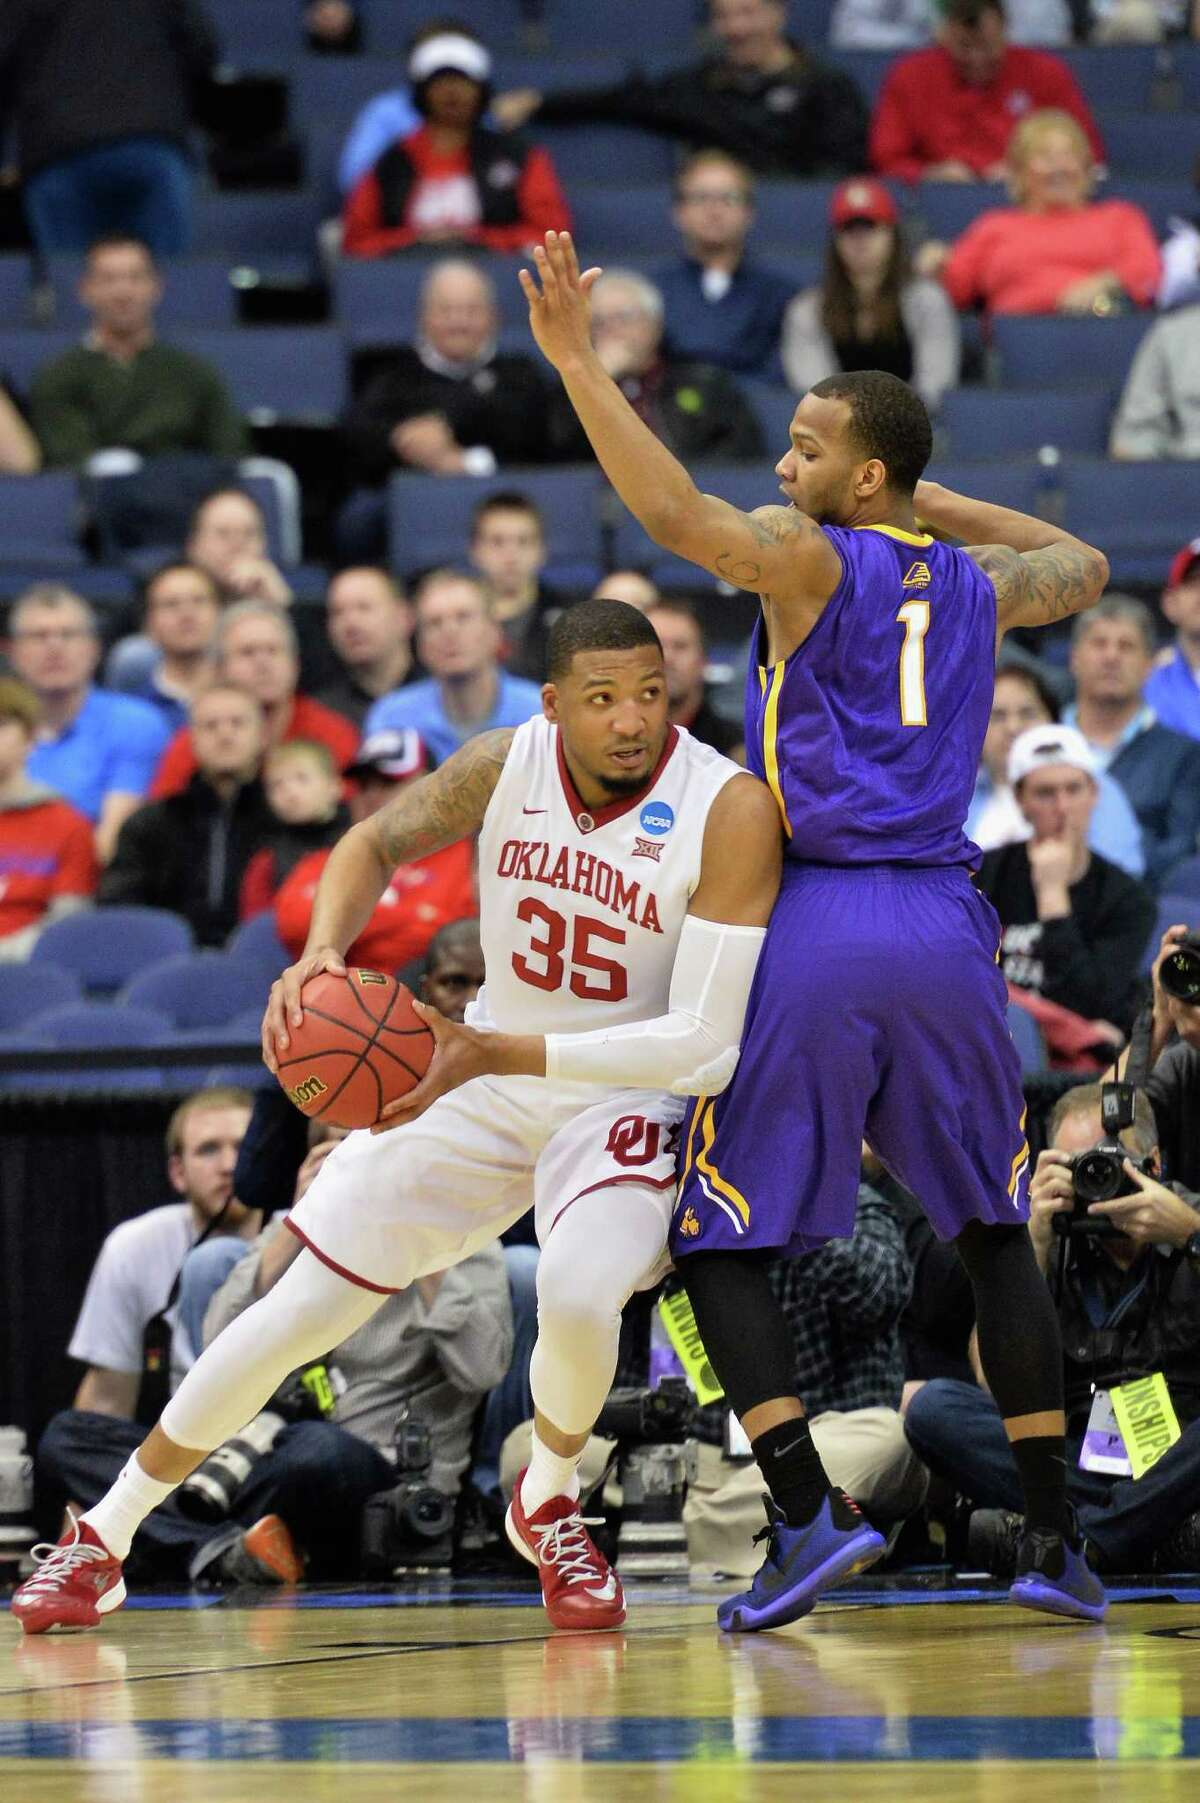 COLUMBUS, OH - MARCH 20: TaShawn Thomas #35 of the Oklahoma Sooners drives against Ray Sanders #1 of the Albany Great Danes during the first half of the second round of the 2015 NCAA Men's Basketball Tournament at Nationwide Arena on March 20, 2015 in Columbus, Ohio. (Photo by Jamie Sabau/Getty Images) ORG XMIT: 527065961